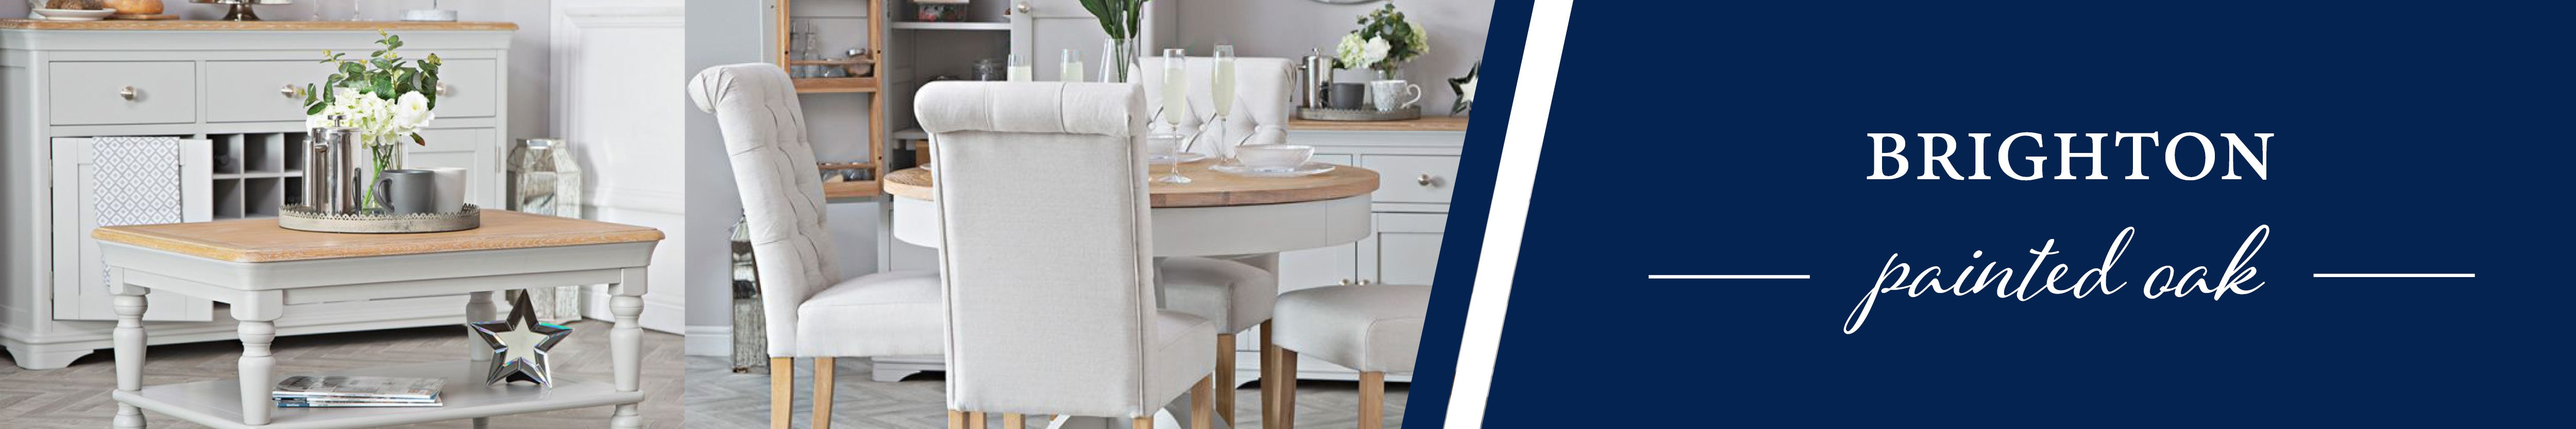 HomePlus Furniture | Brighton Painted Collection